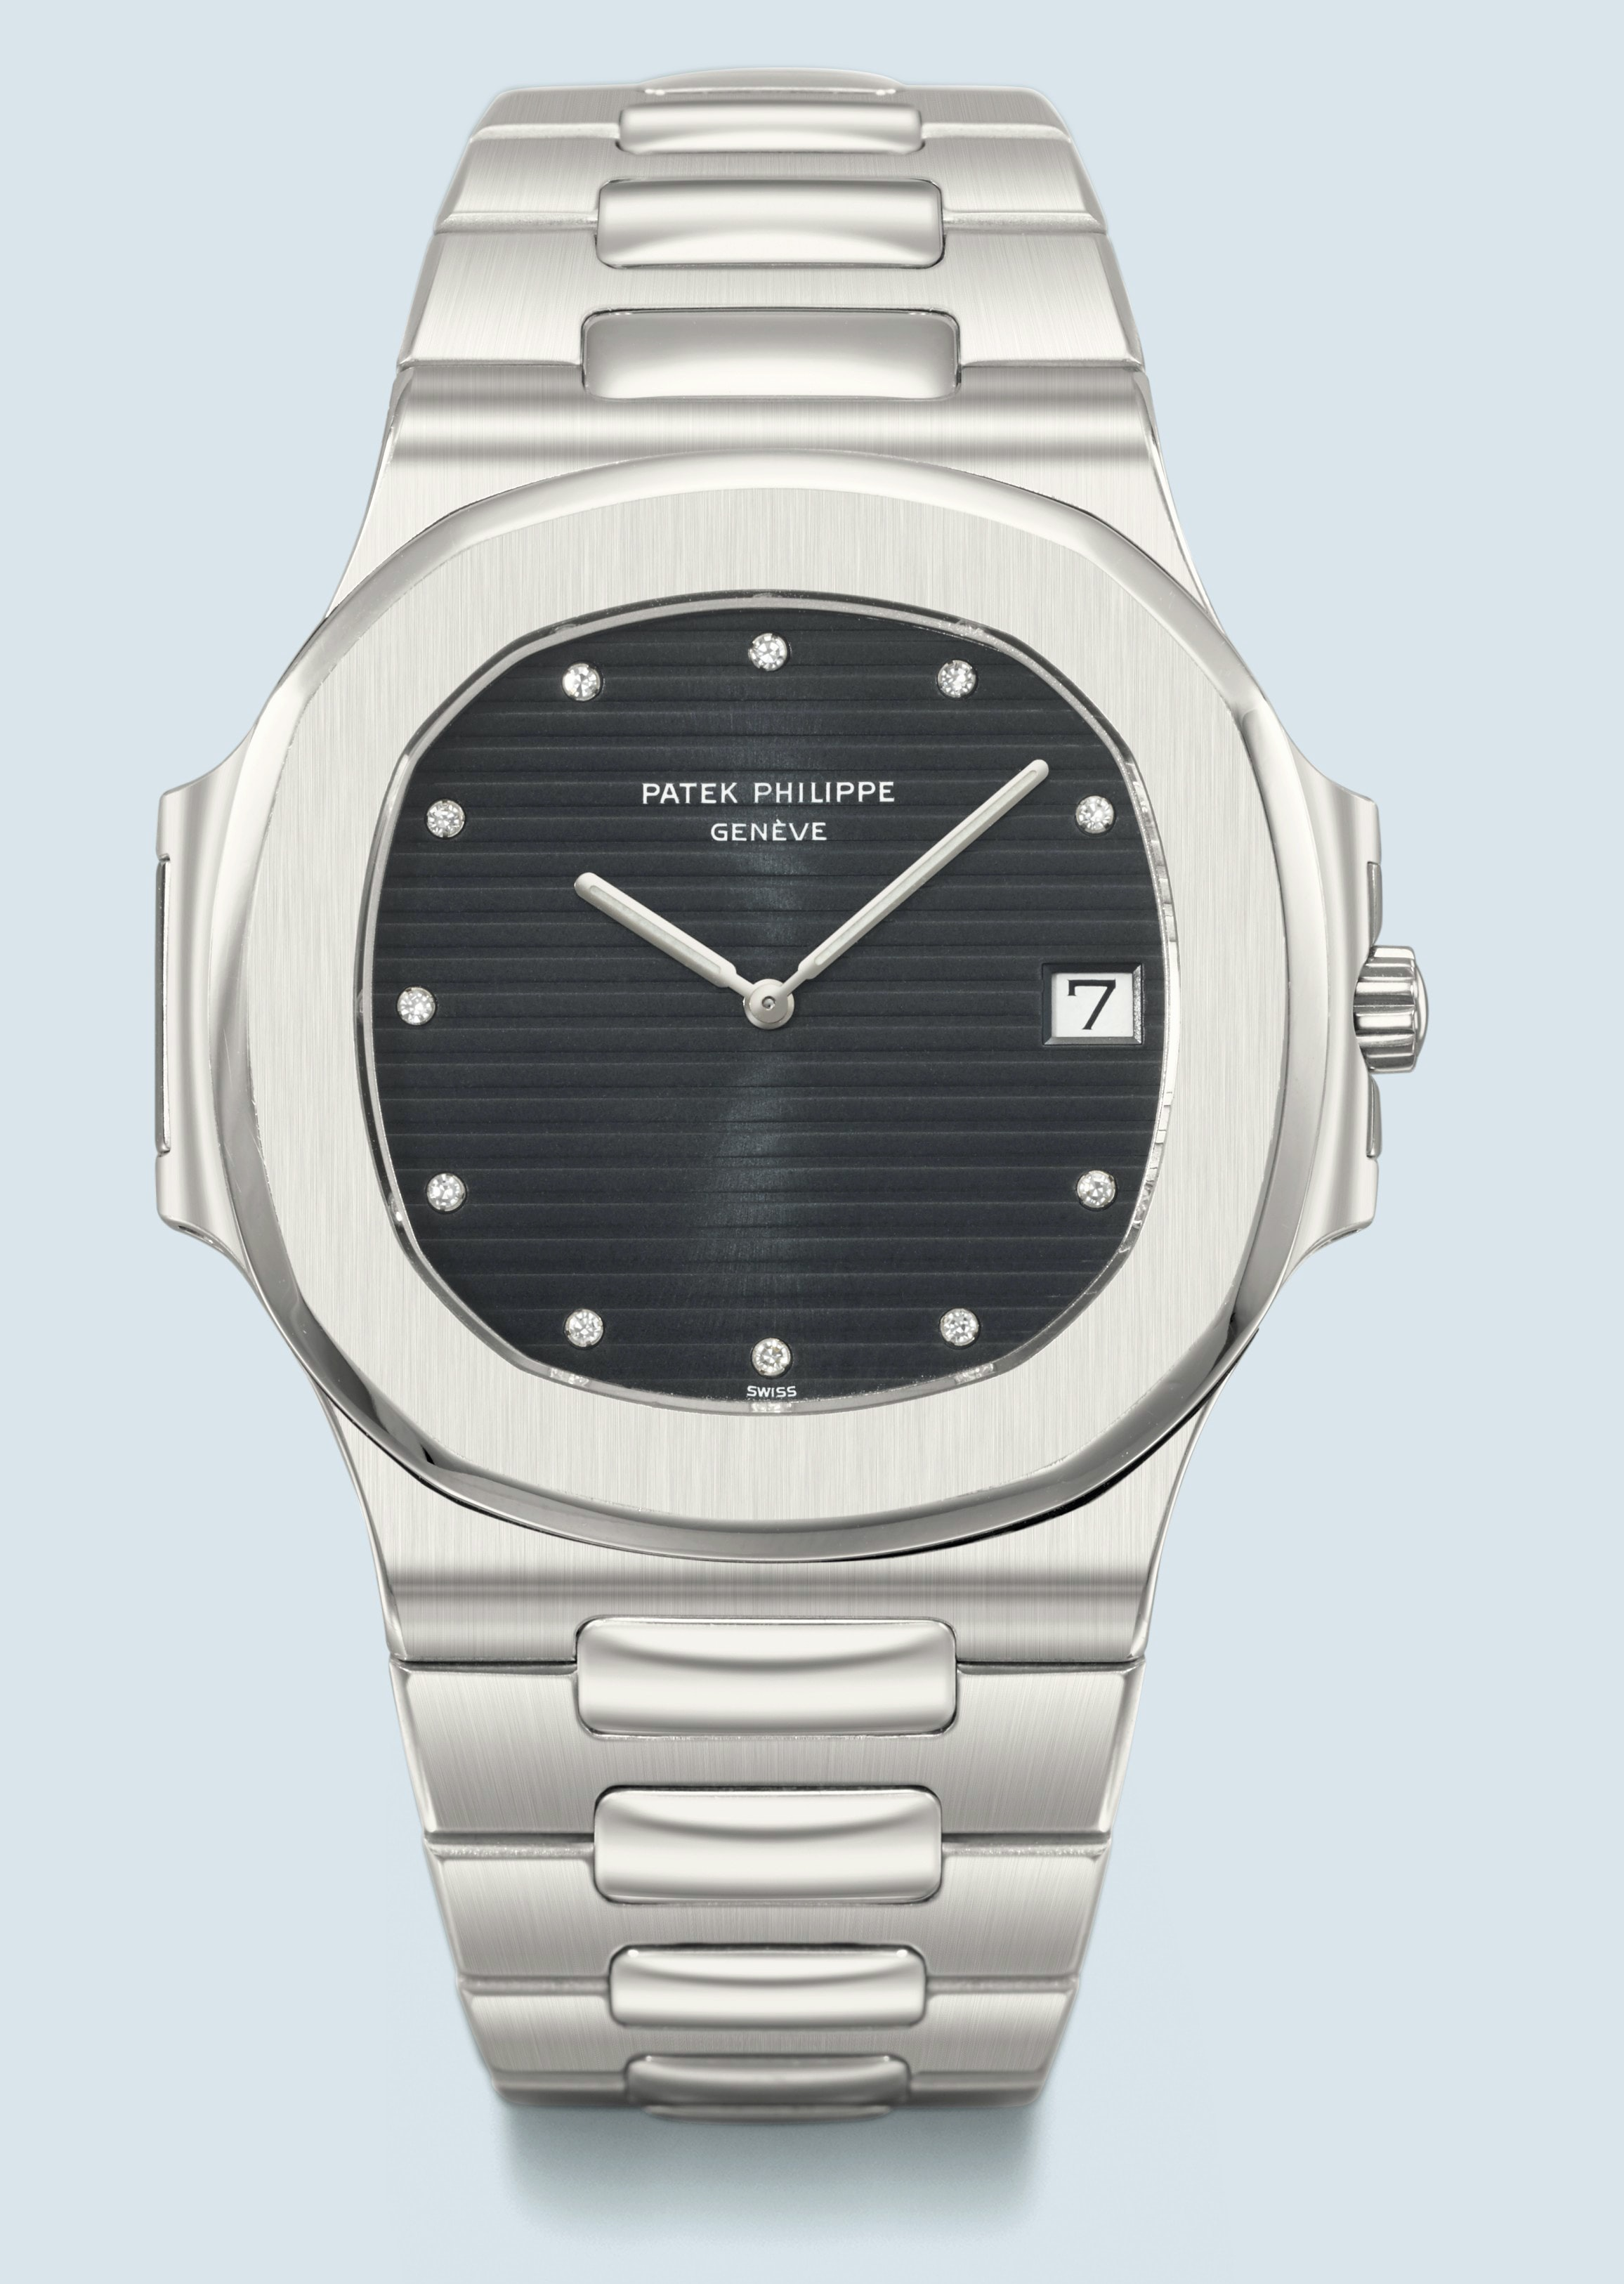 Patek white gold Nautilus 3700G  Some Lessons From Christie's Latest Auction In Geneva (Spoiler Alert: Vintage Patek Is Still King) Some Lessons From Christie's Latest Auction In Geneva (Spoiler Alert: Vintage Patek Is Still King) 8